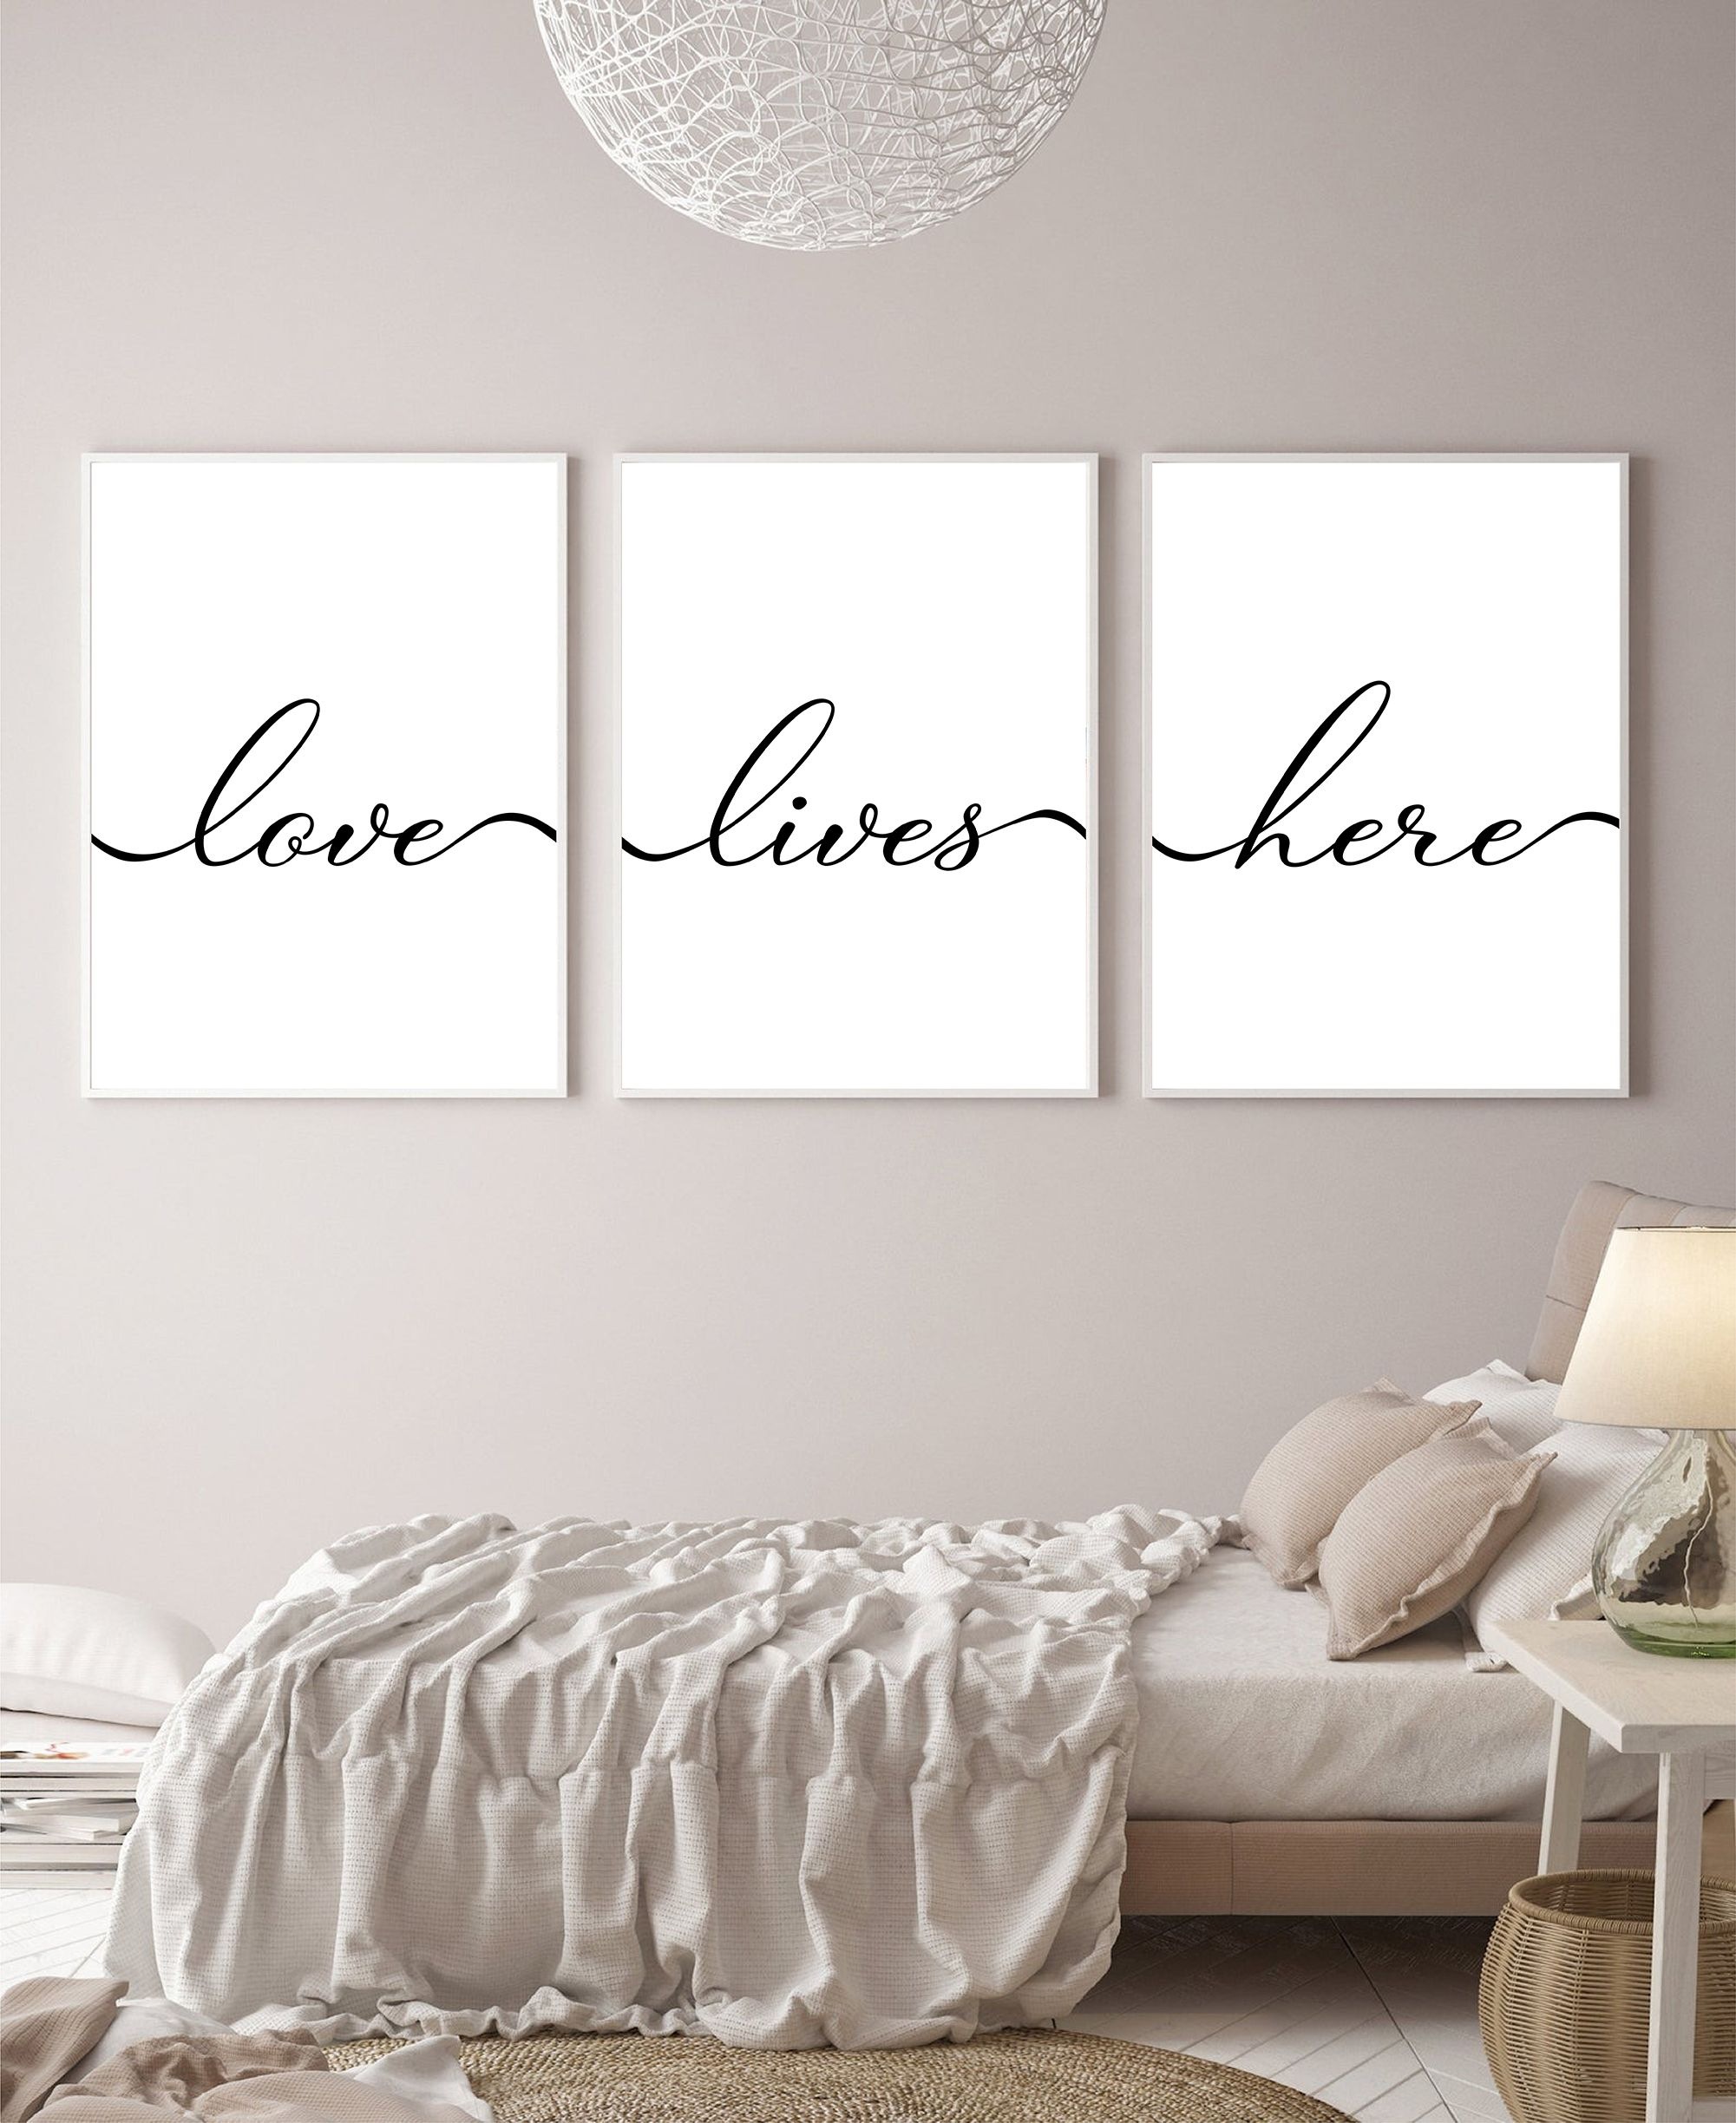 Love Lives Here Set Of 3 Wall Art Print Minimalistic Simple Etsy Prints Home Decor Bedroom